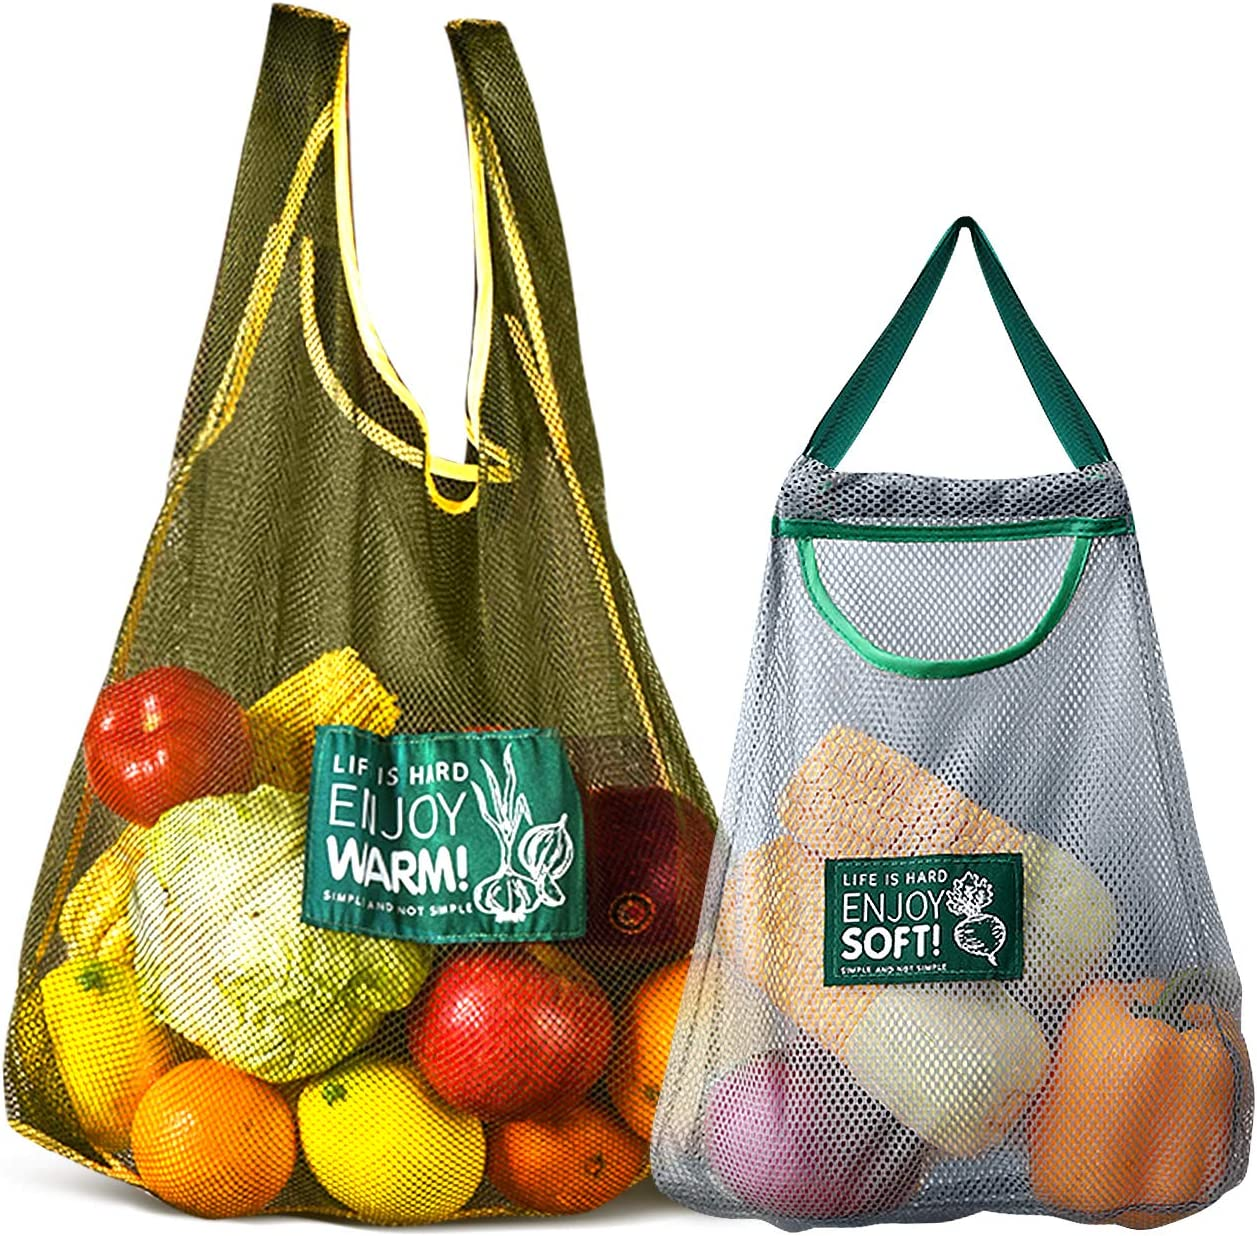 Versatile Hanging Mesh Storage Bags - Durable Onion Storage Fruit and Vegetable Bags Breathable Storage Mesh Bags for Garlics Potatoes Onions Saver Garbage Bag Organizer(1 Large + 1 Small)